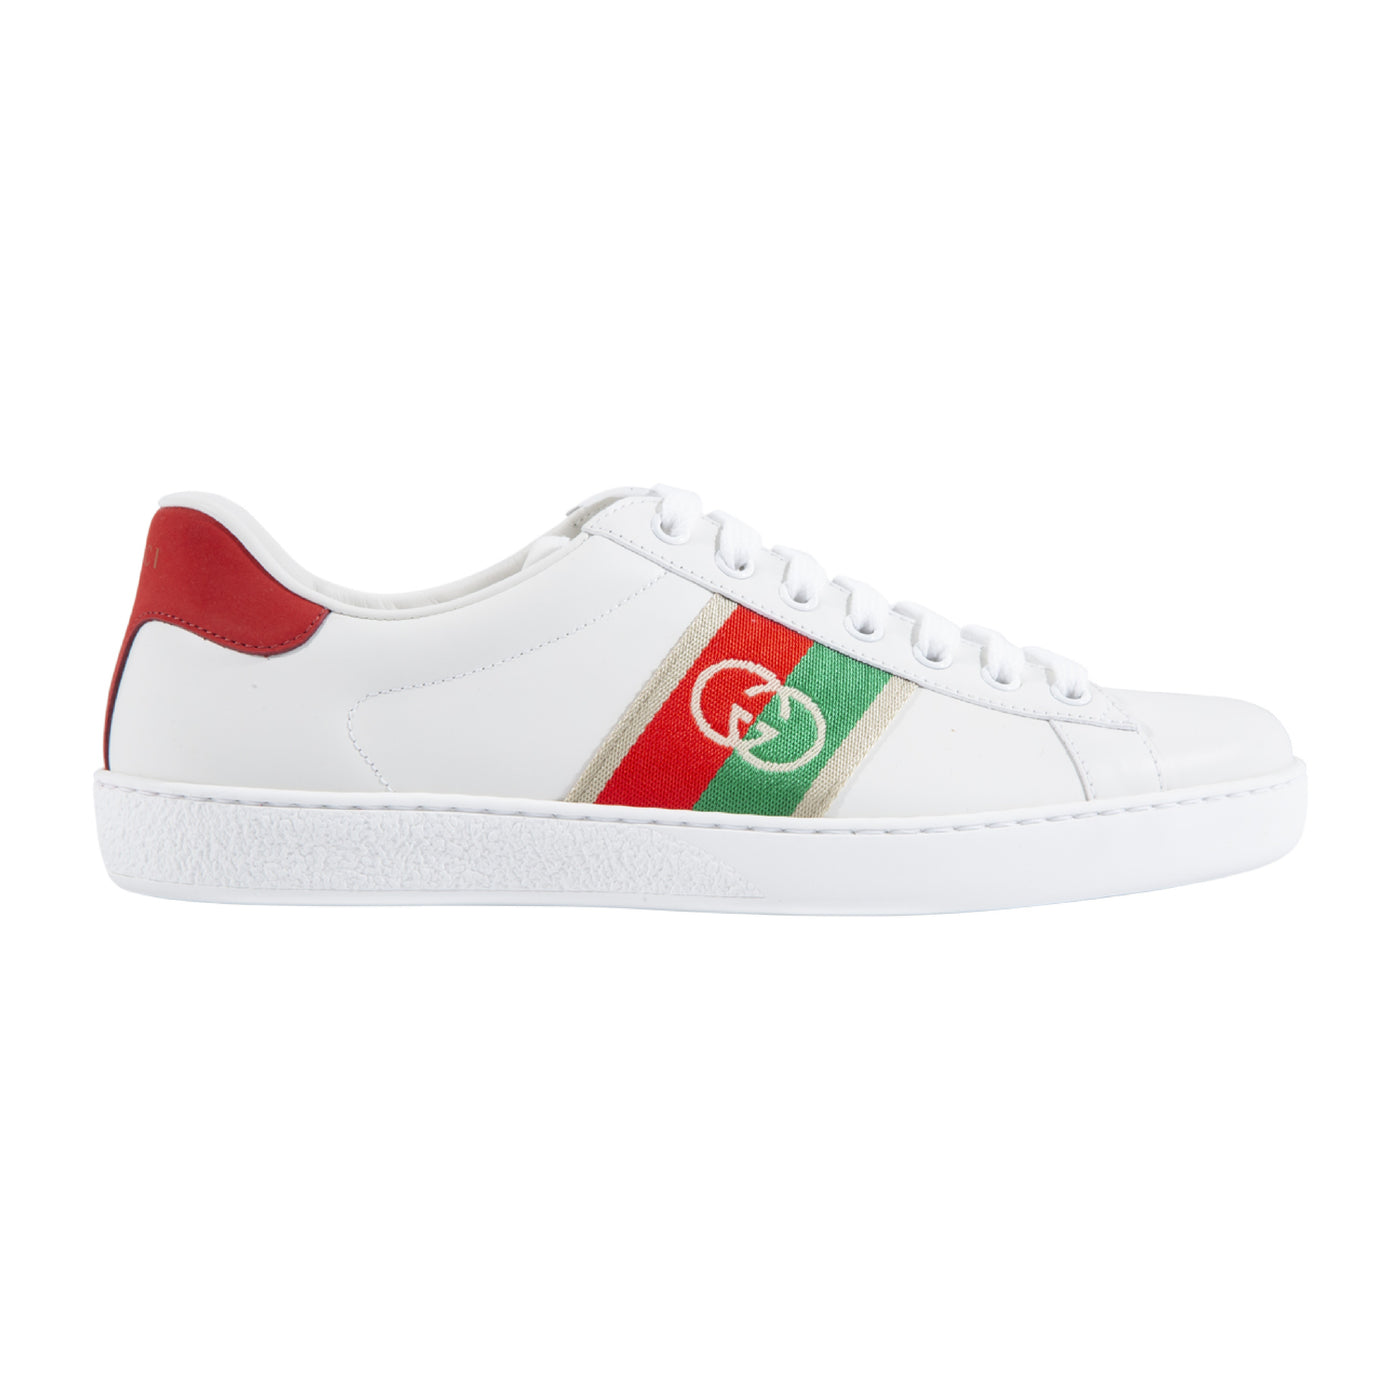 Load image into Gallery viewer, GUCCI LOW TOP SNEAKERS WITH LOGO STRIPE WHITE